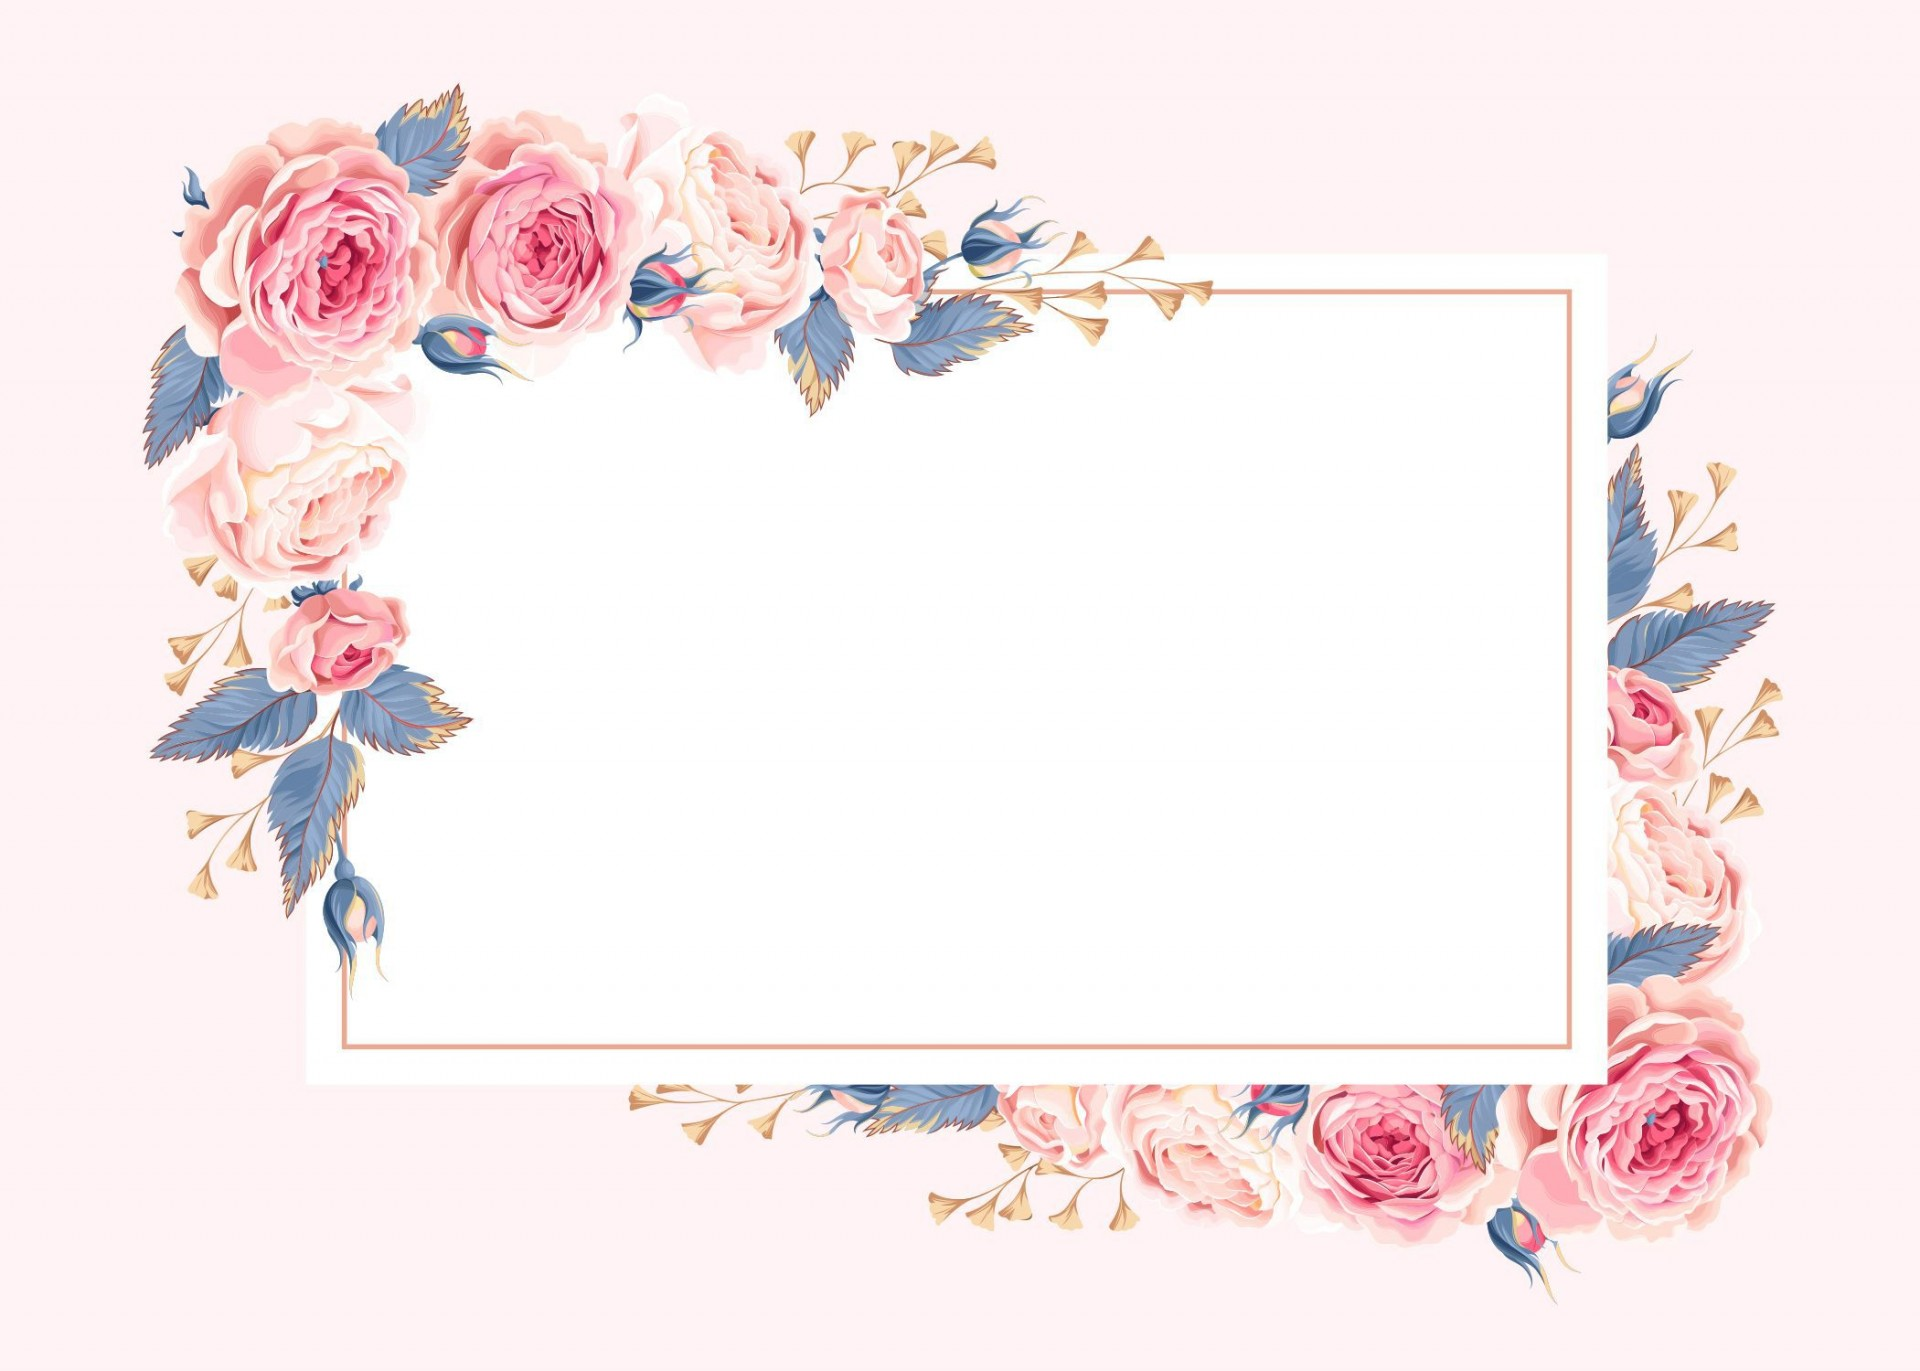 006 Top Free Place Card Template High Resolution  Wedding Download Christma Name Word1920